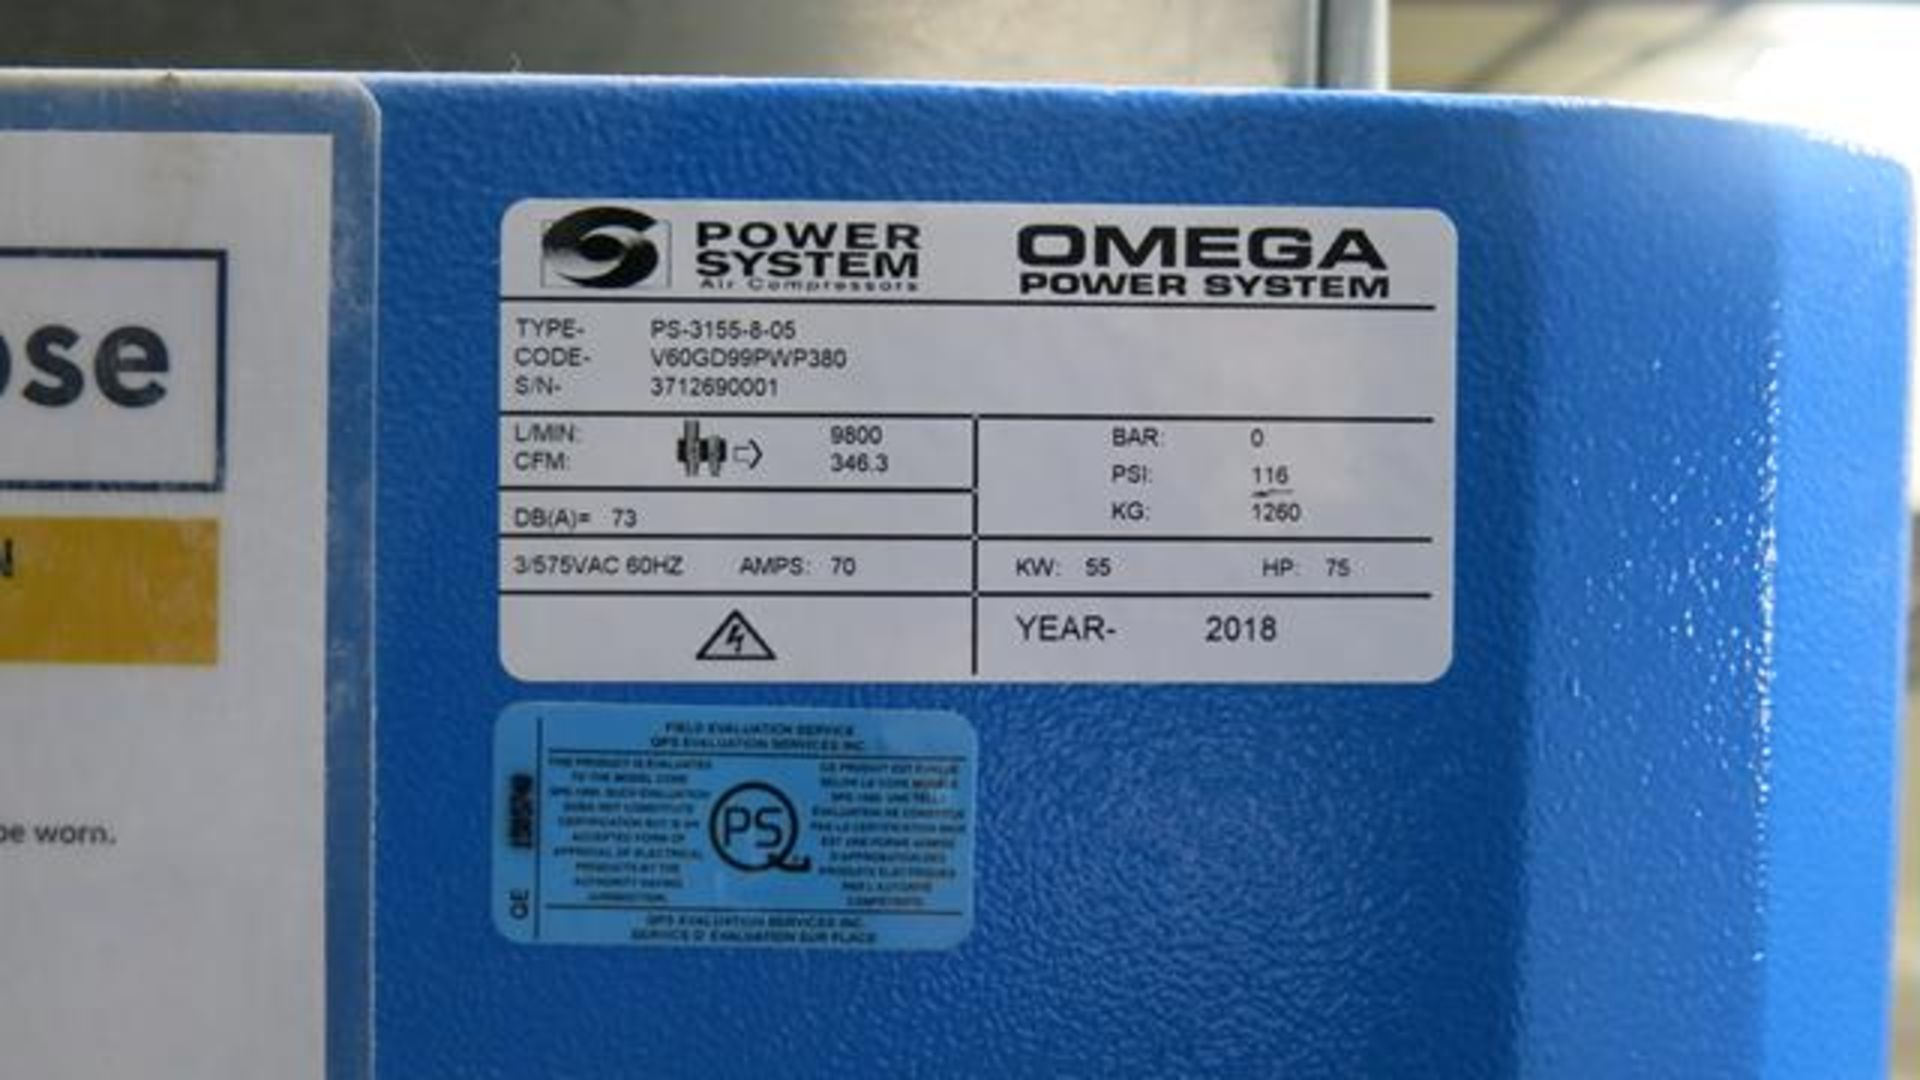 Lot 924 - OMEGA POWER SYSTEMS, PS-3155-8-05, NEWTON 3155, 75 HP, AIR COMPRESSOR, 116 PSI, S/N 3712690001, 2018